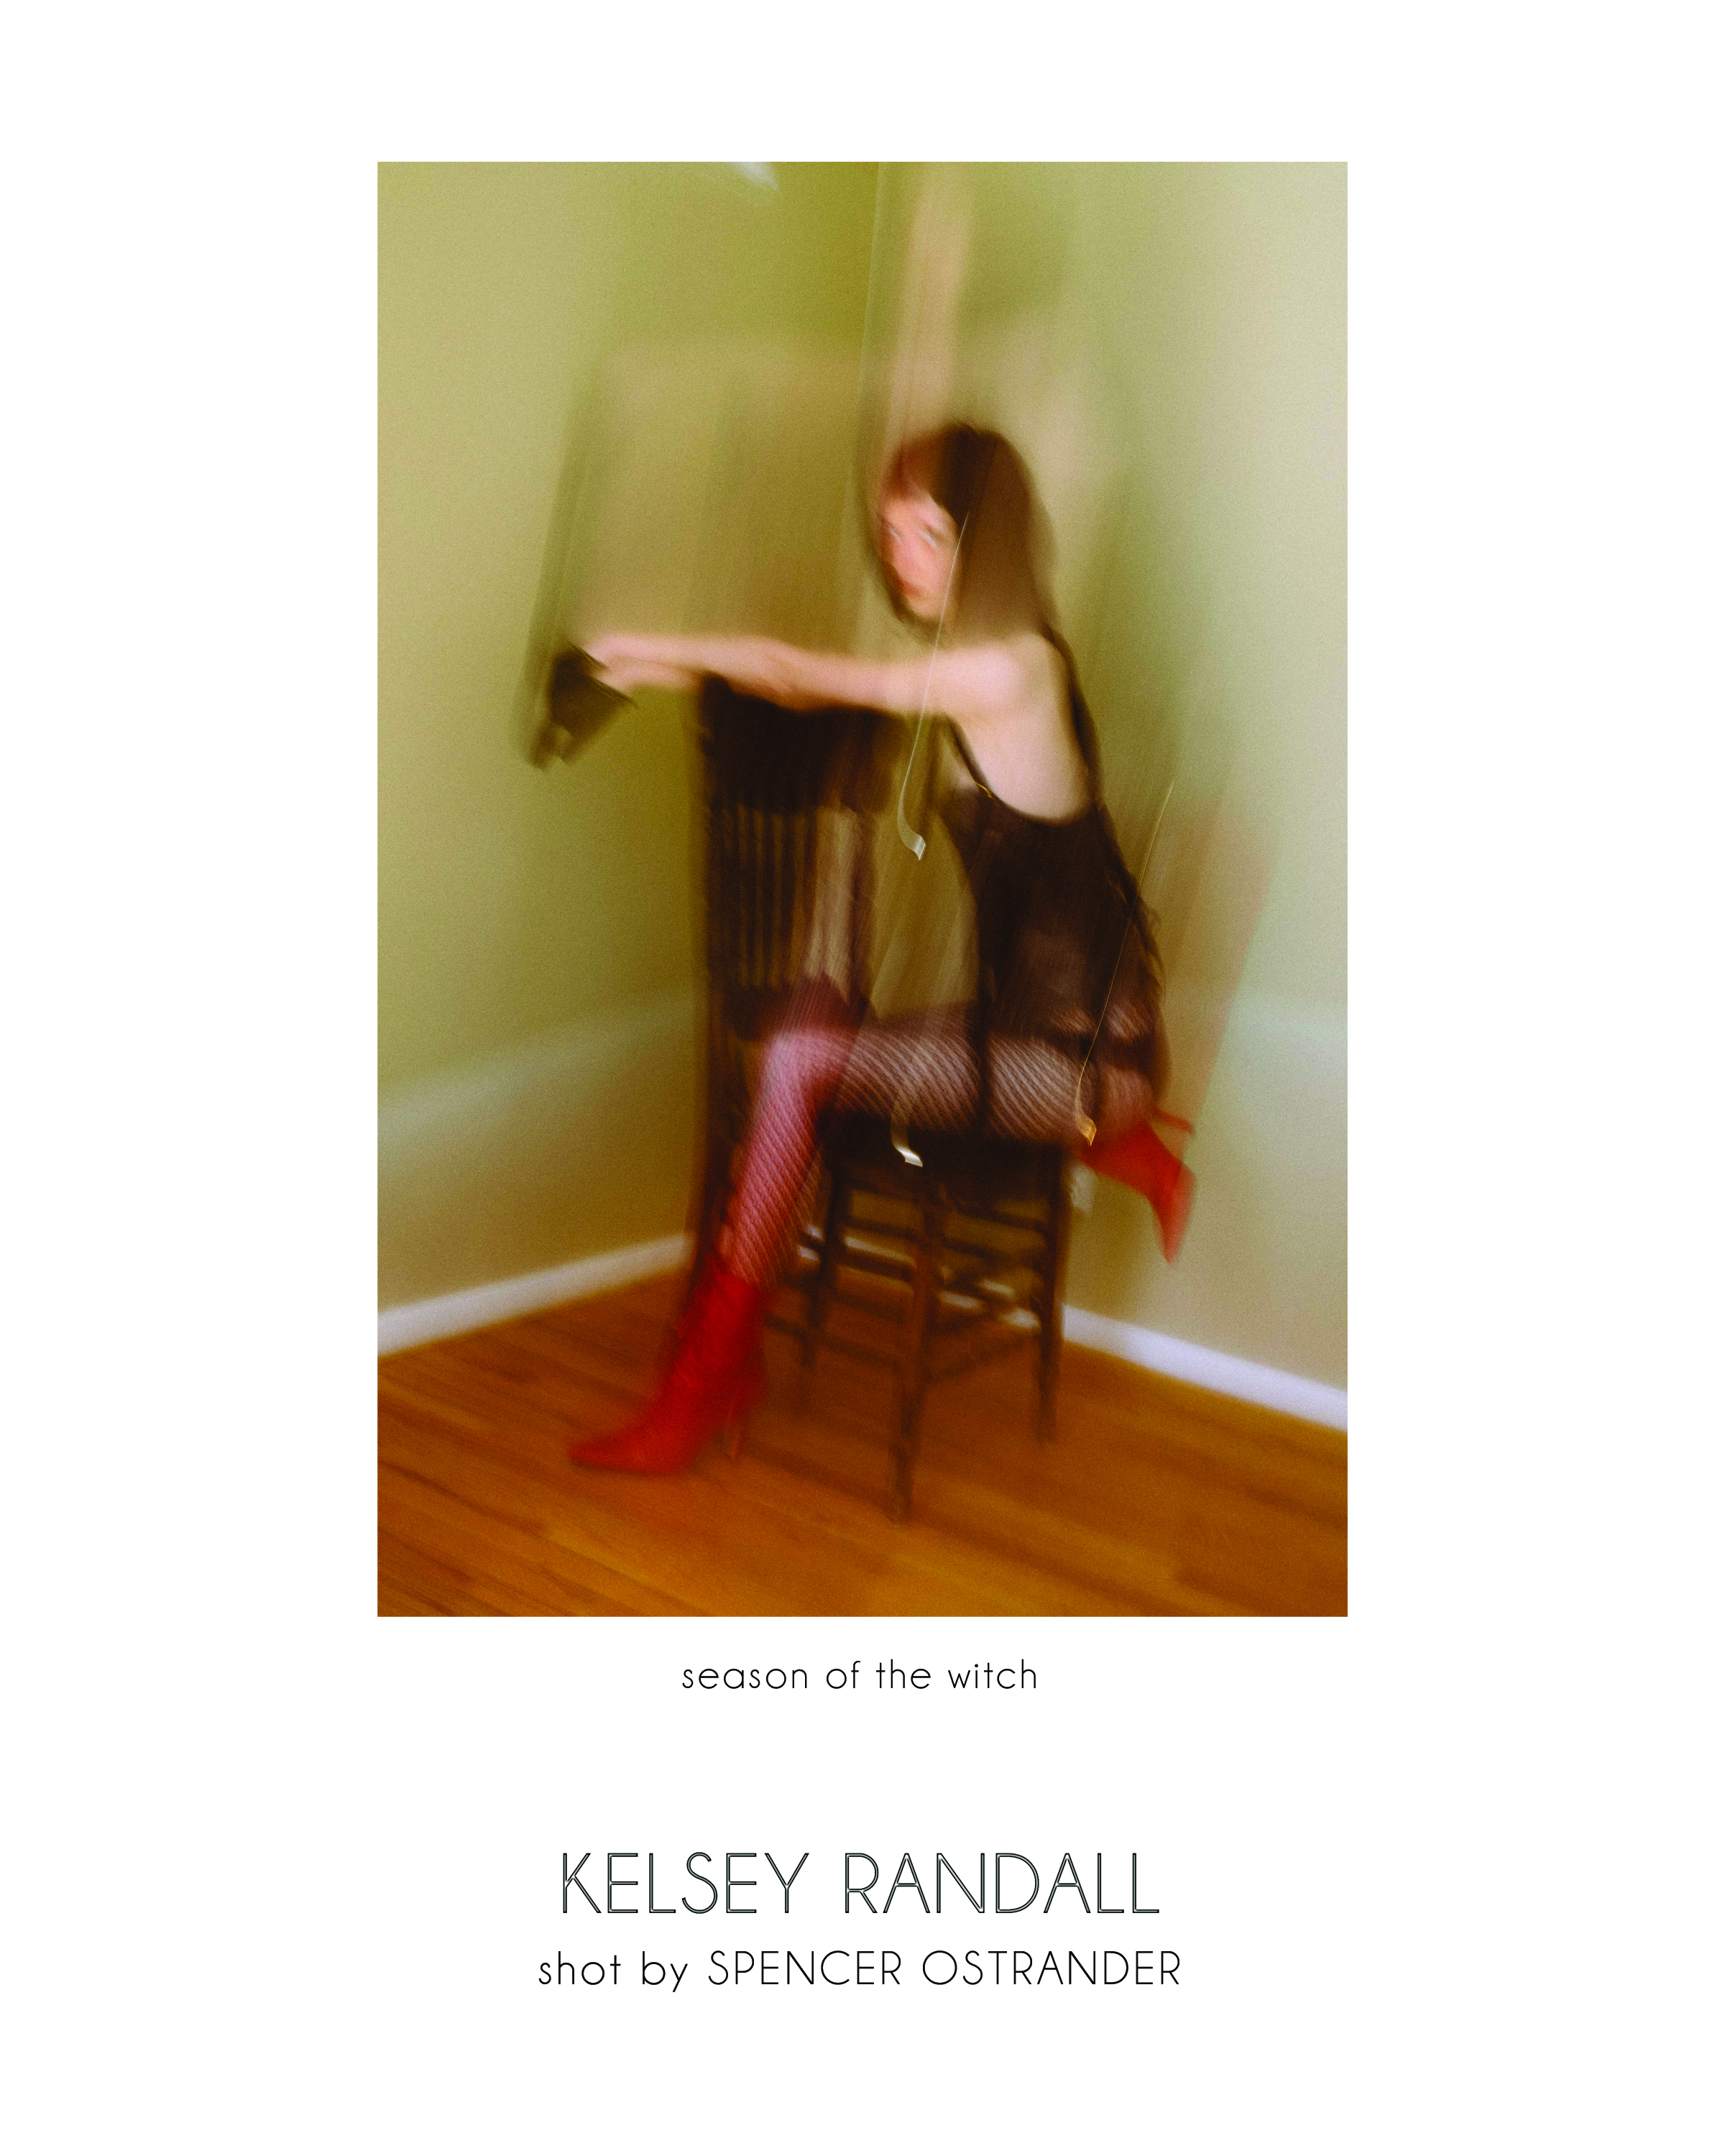 kelsey randall season of the witch